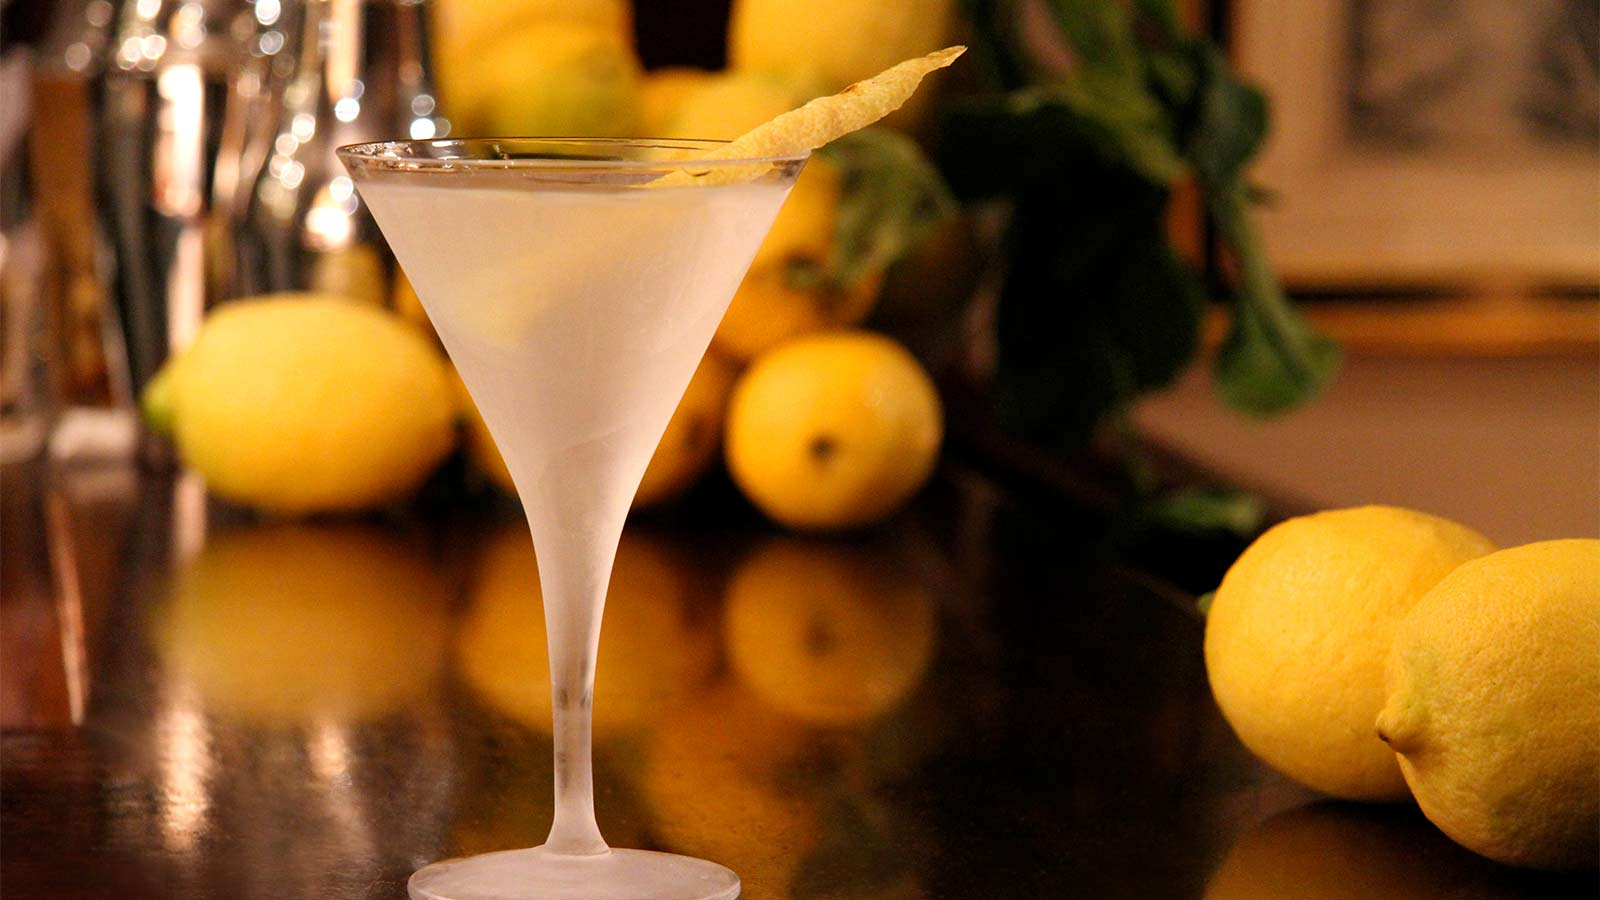 Dukes Hotel: The World's Best Martini?